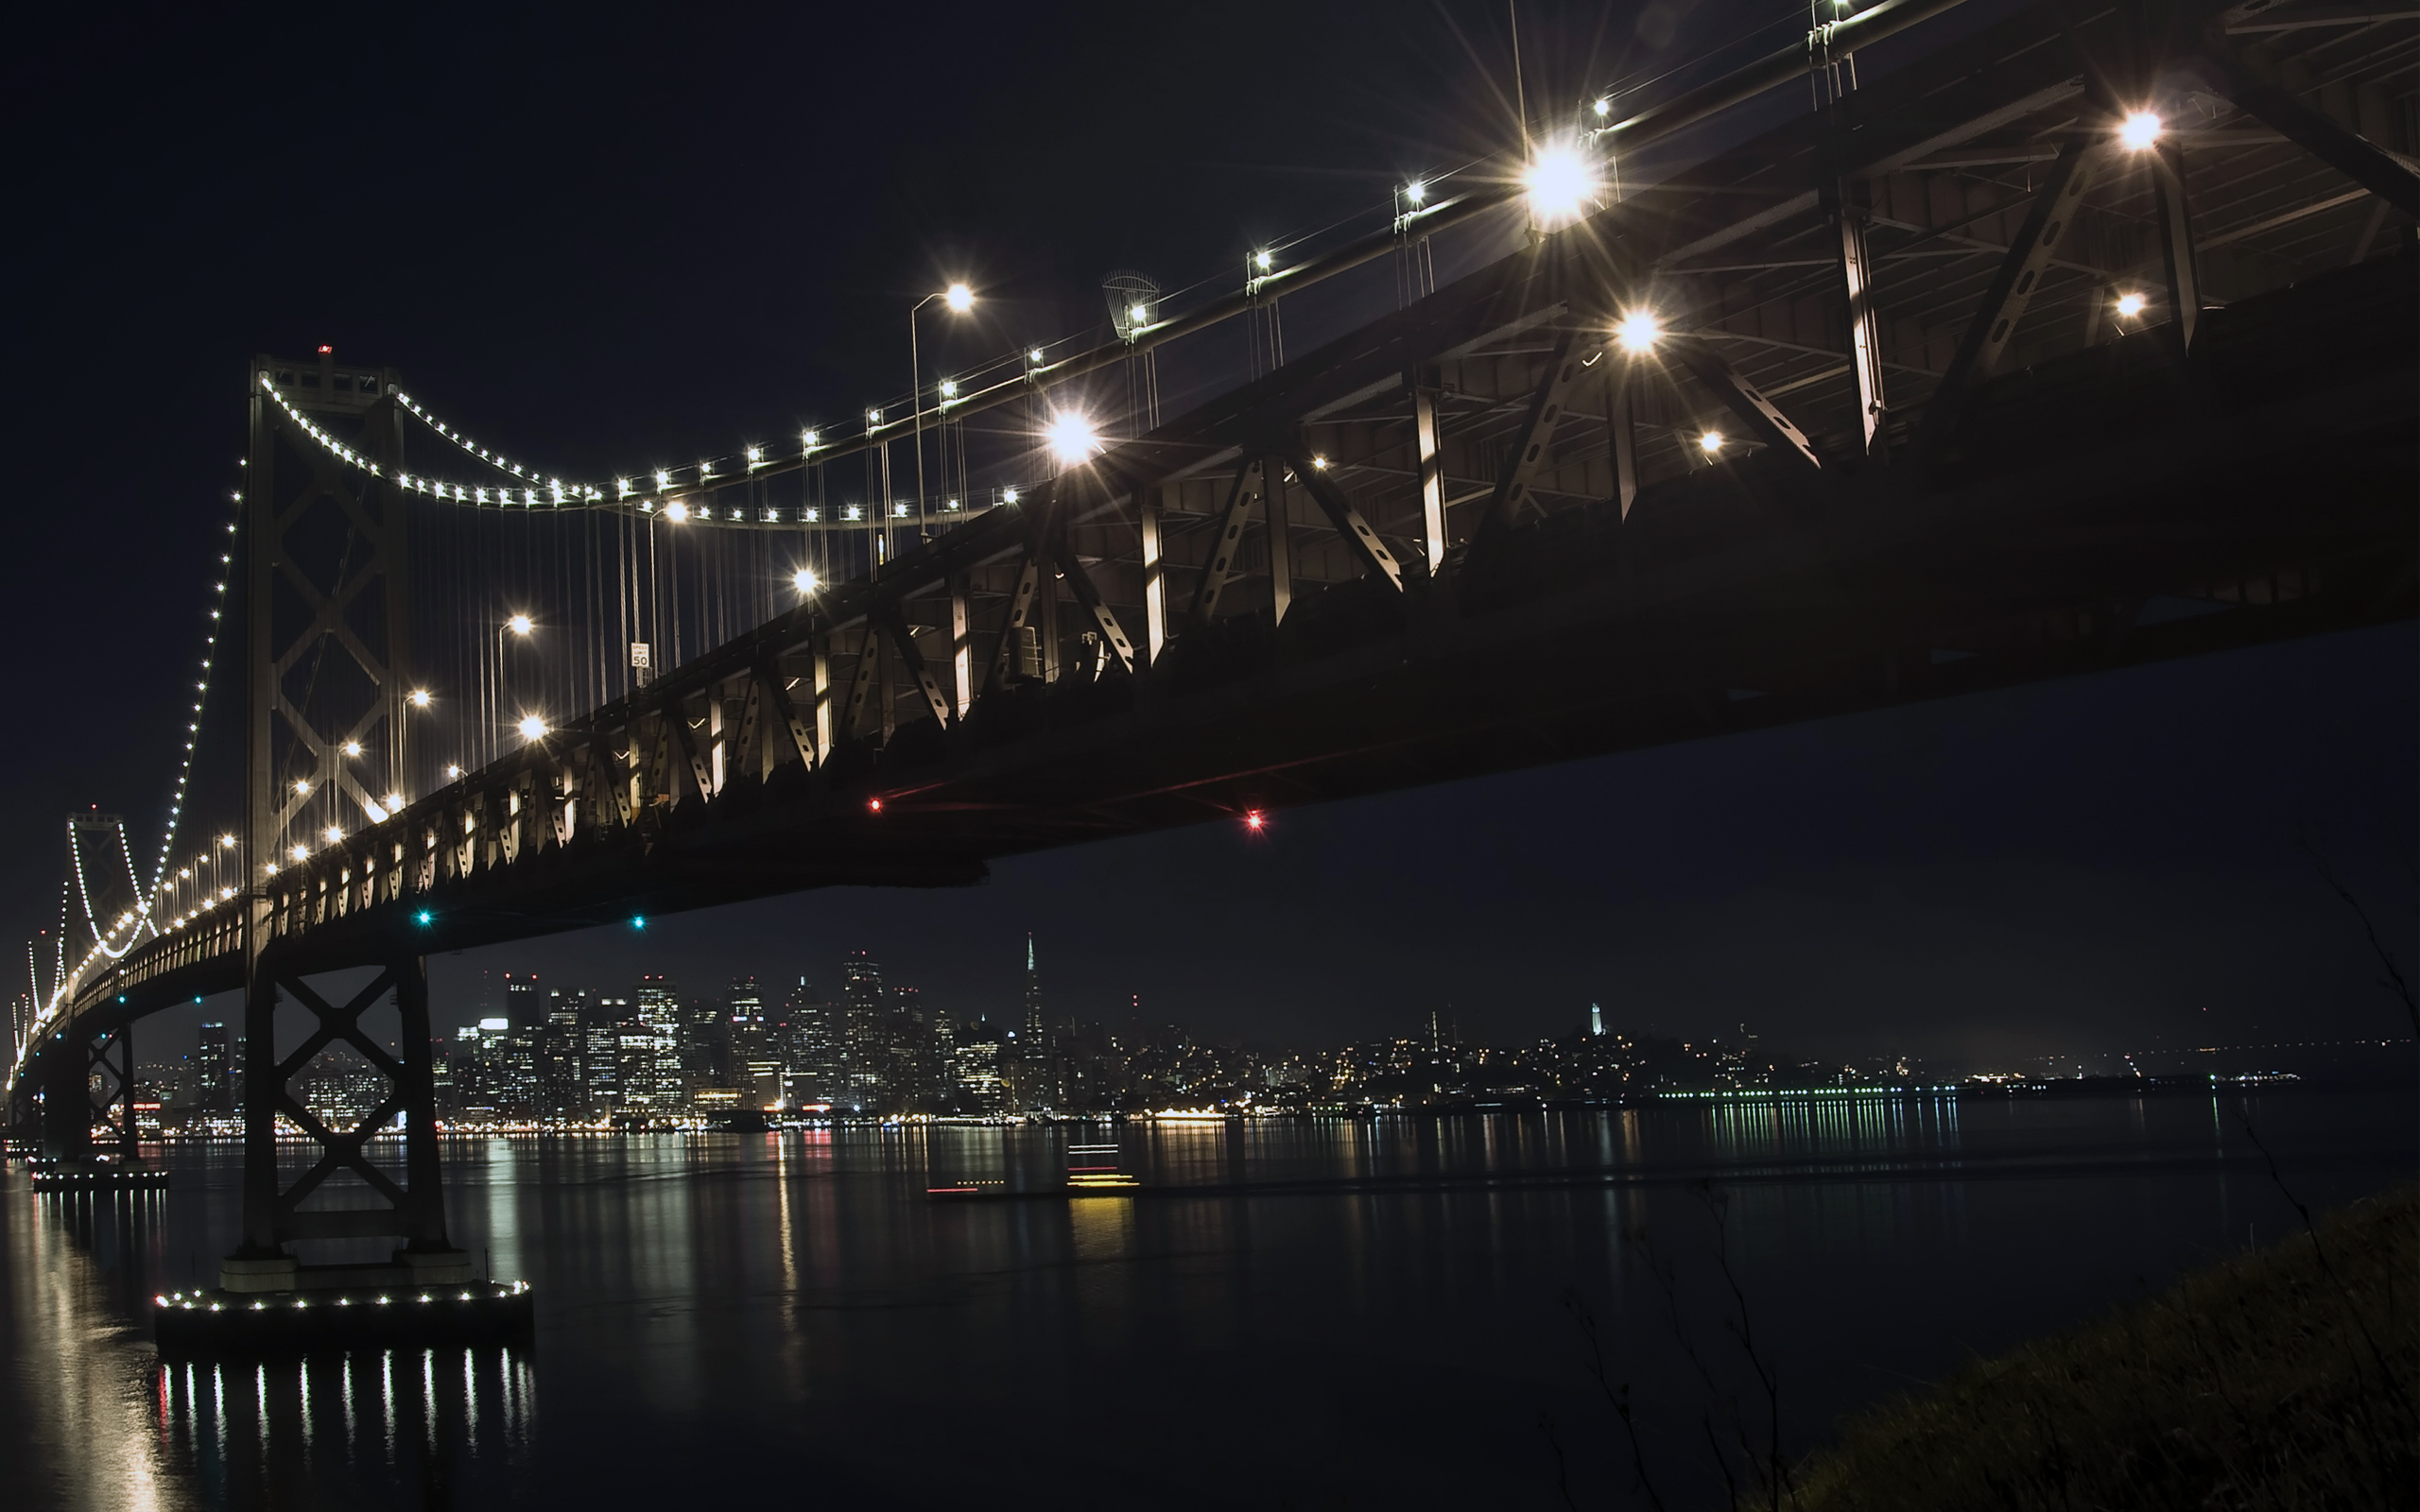 The bay bridge by night 2467.43 Kb